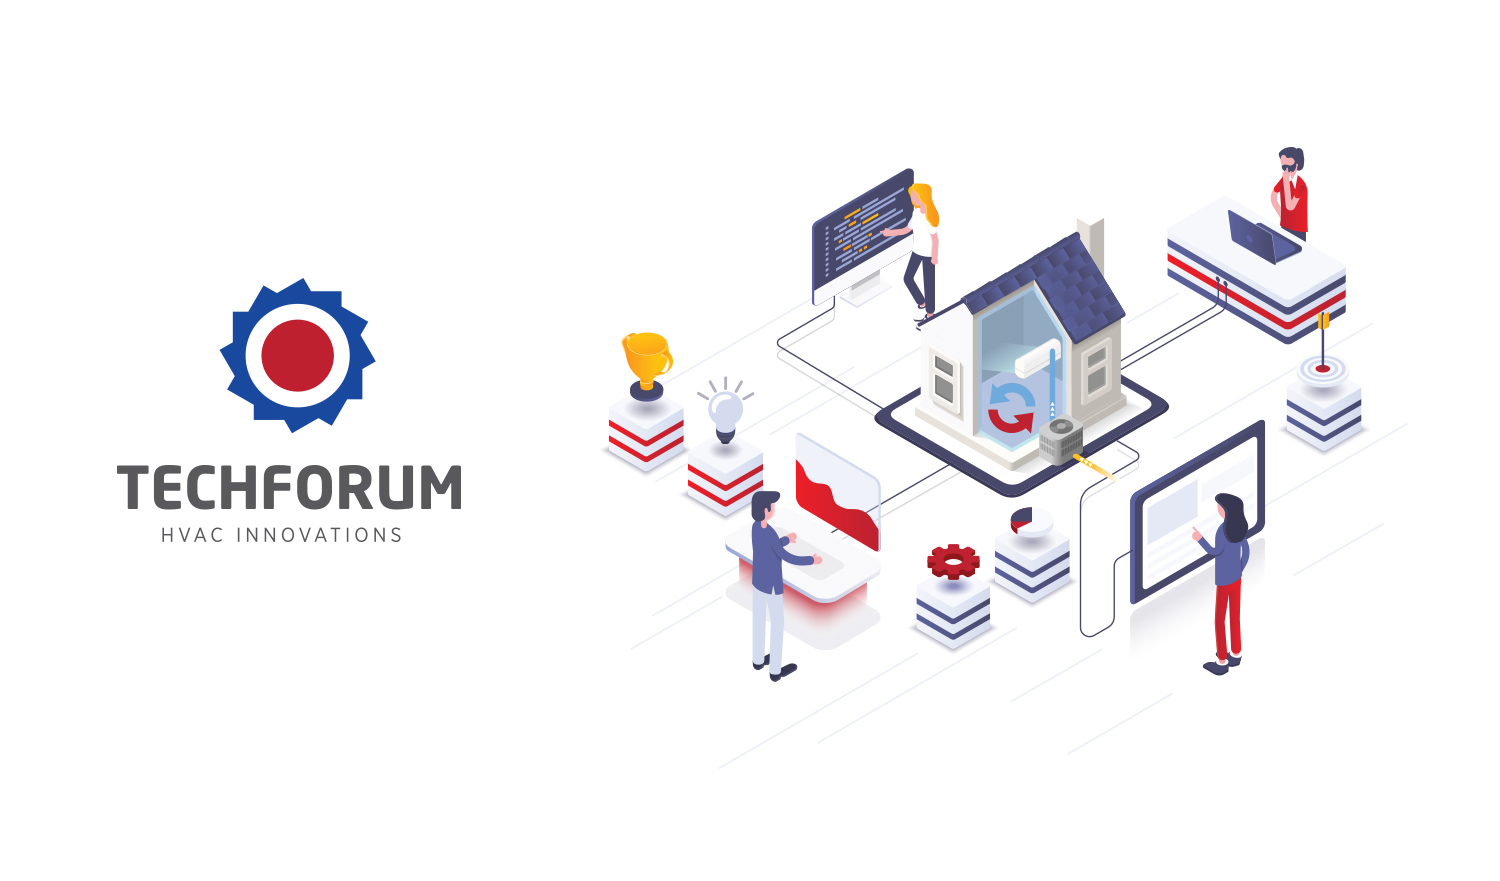 TECHFORUM 2019